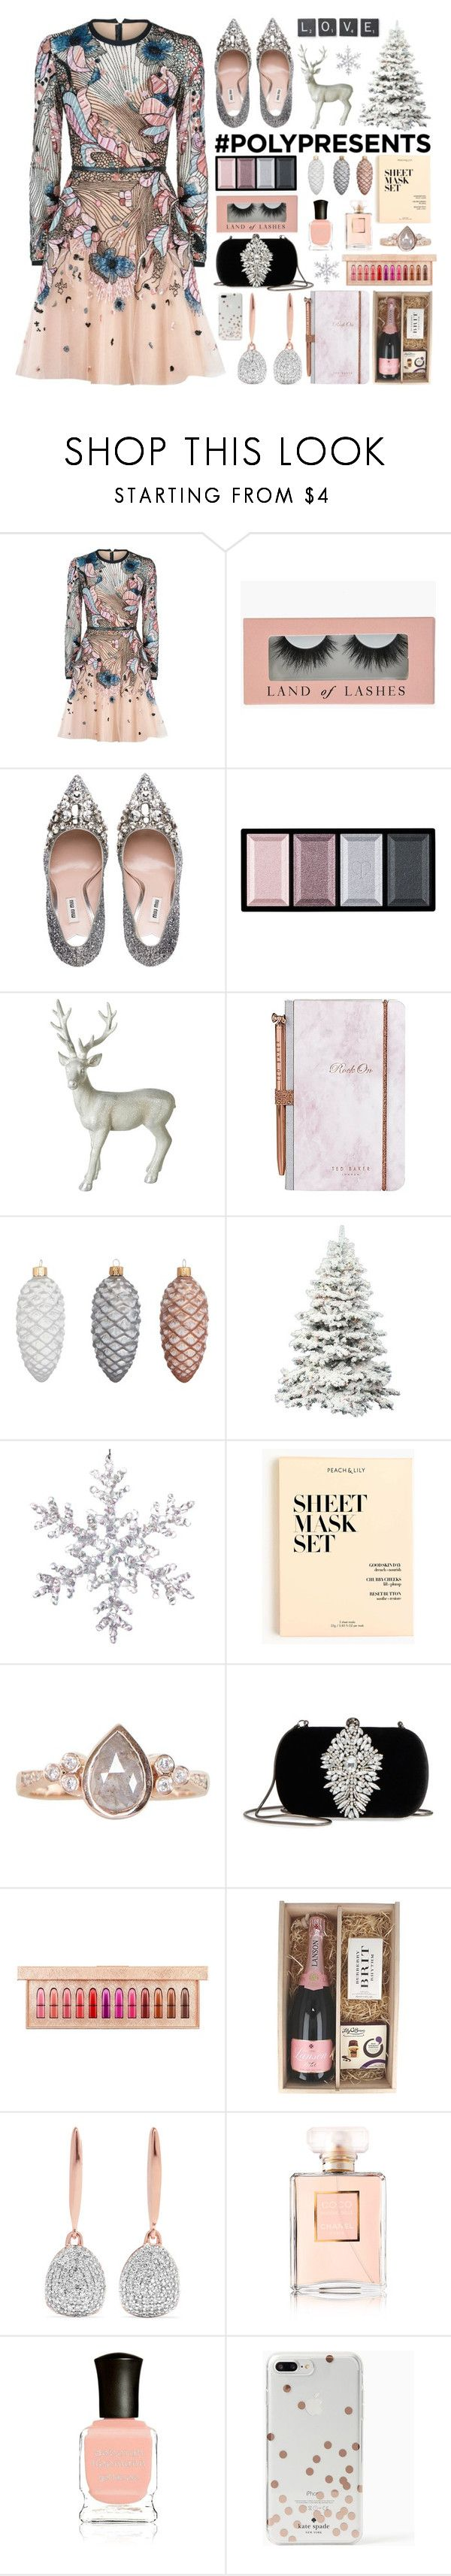 """#PolyPresents: Wish List"" by stavrolga on Polyvore featuring Elie Saab, Miu Miu, Clé de Peau Beauté, Parlane, Ted Baker, John Lewis, J.Crew, Luna Skye, Badgley Mischka and MAC Cosmetics"